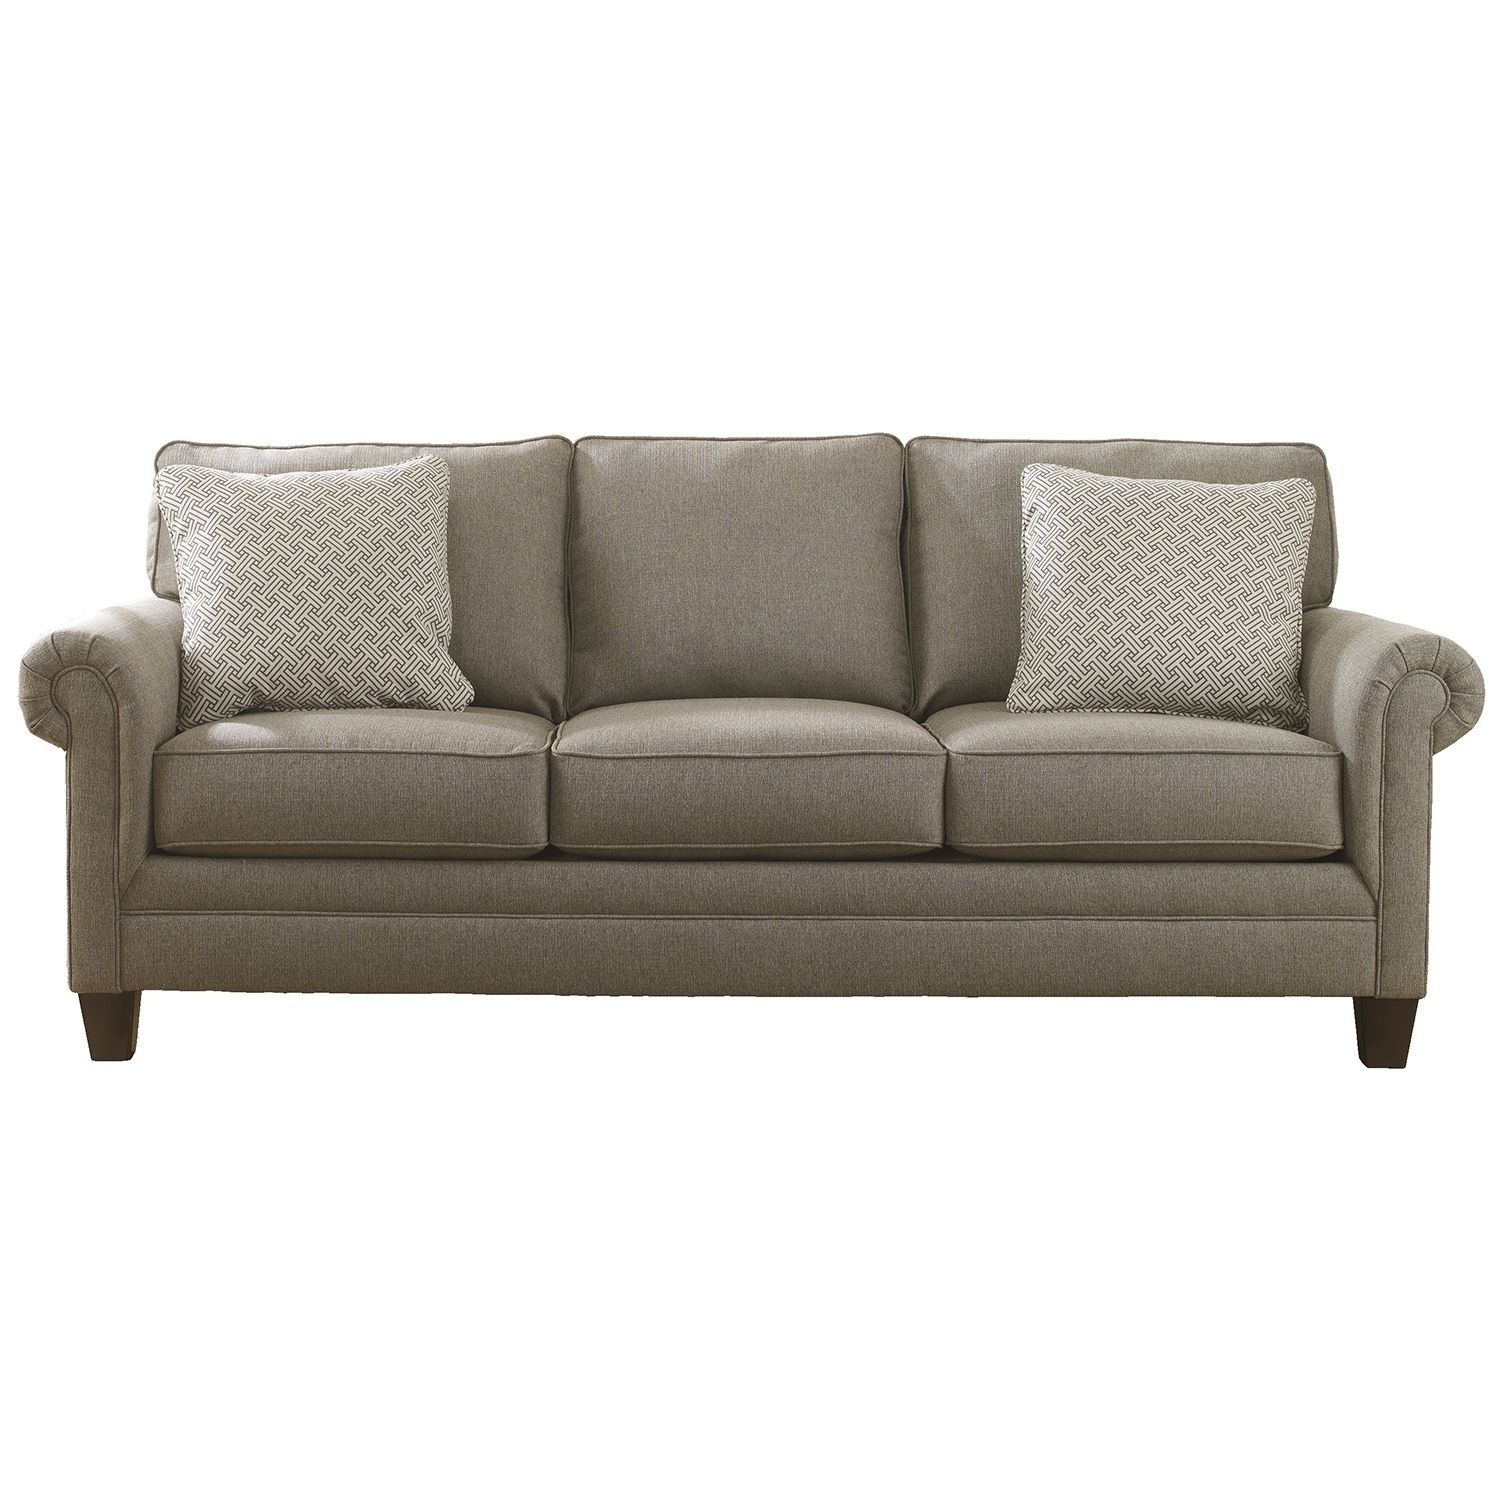 6 Foot Couch